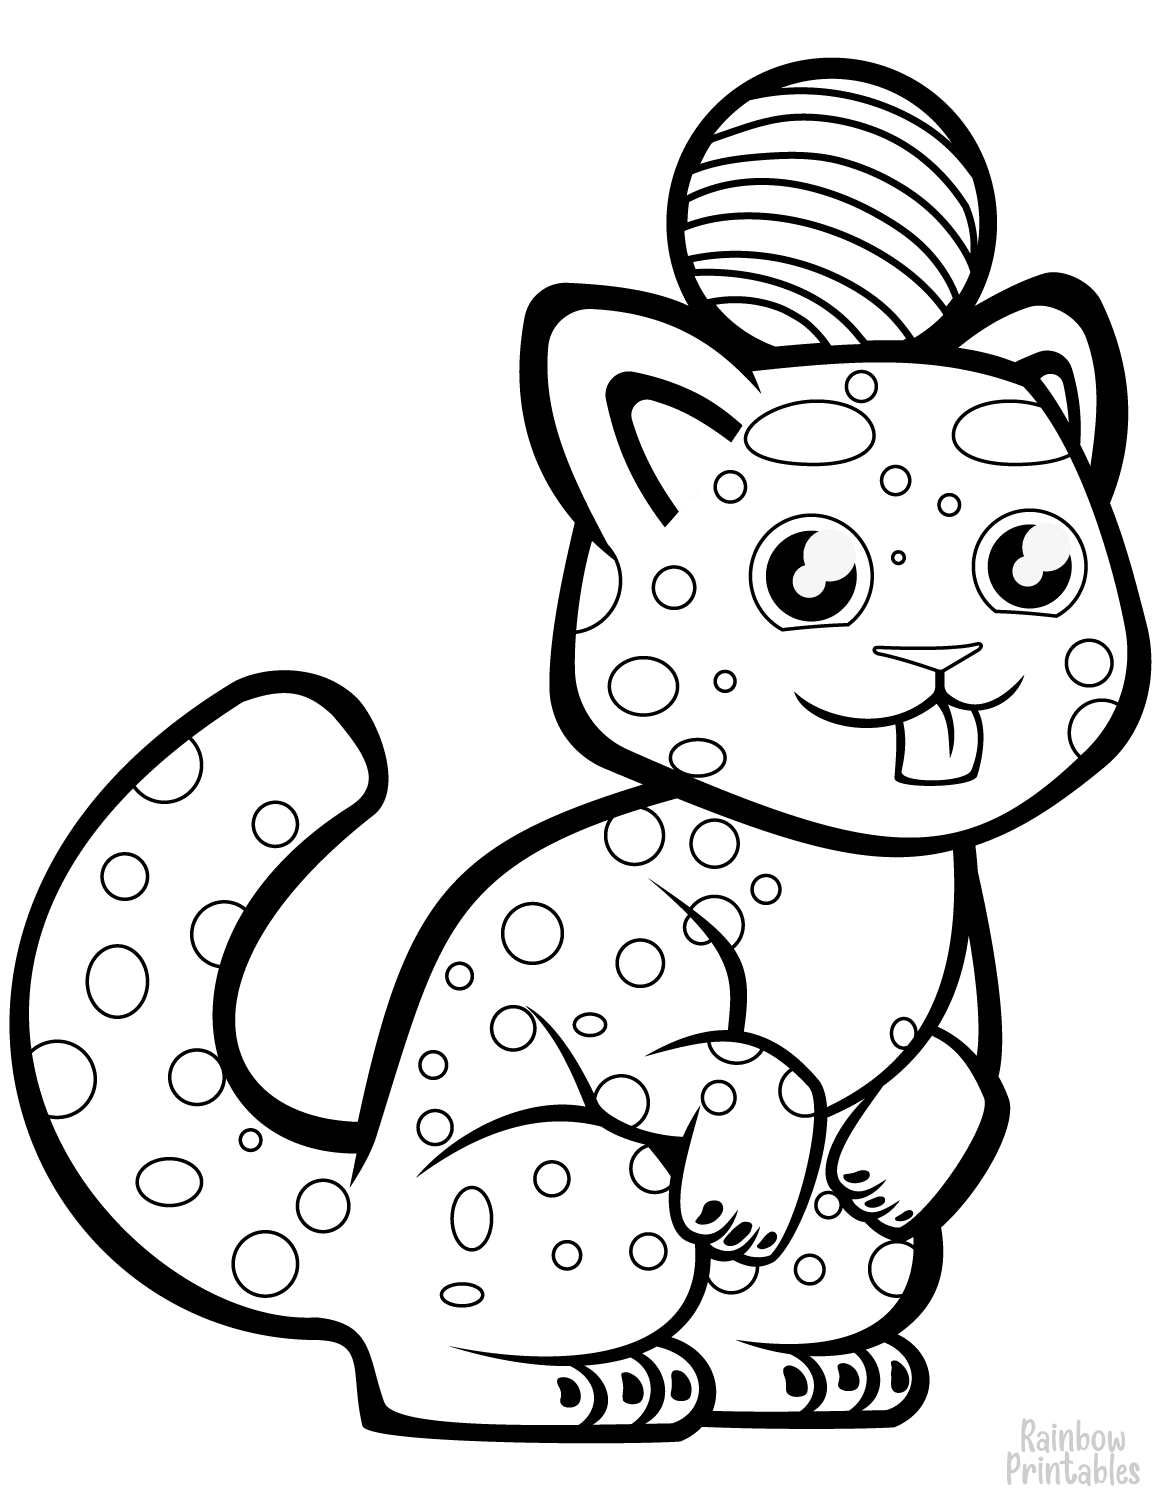 cute cheetah with a ball on its head coloring page